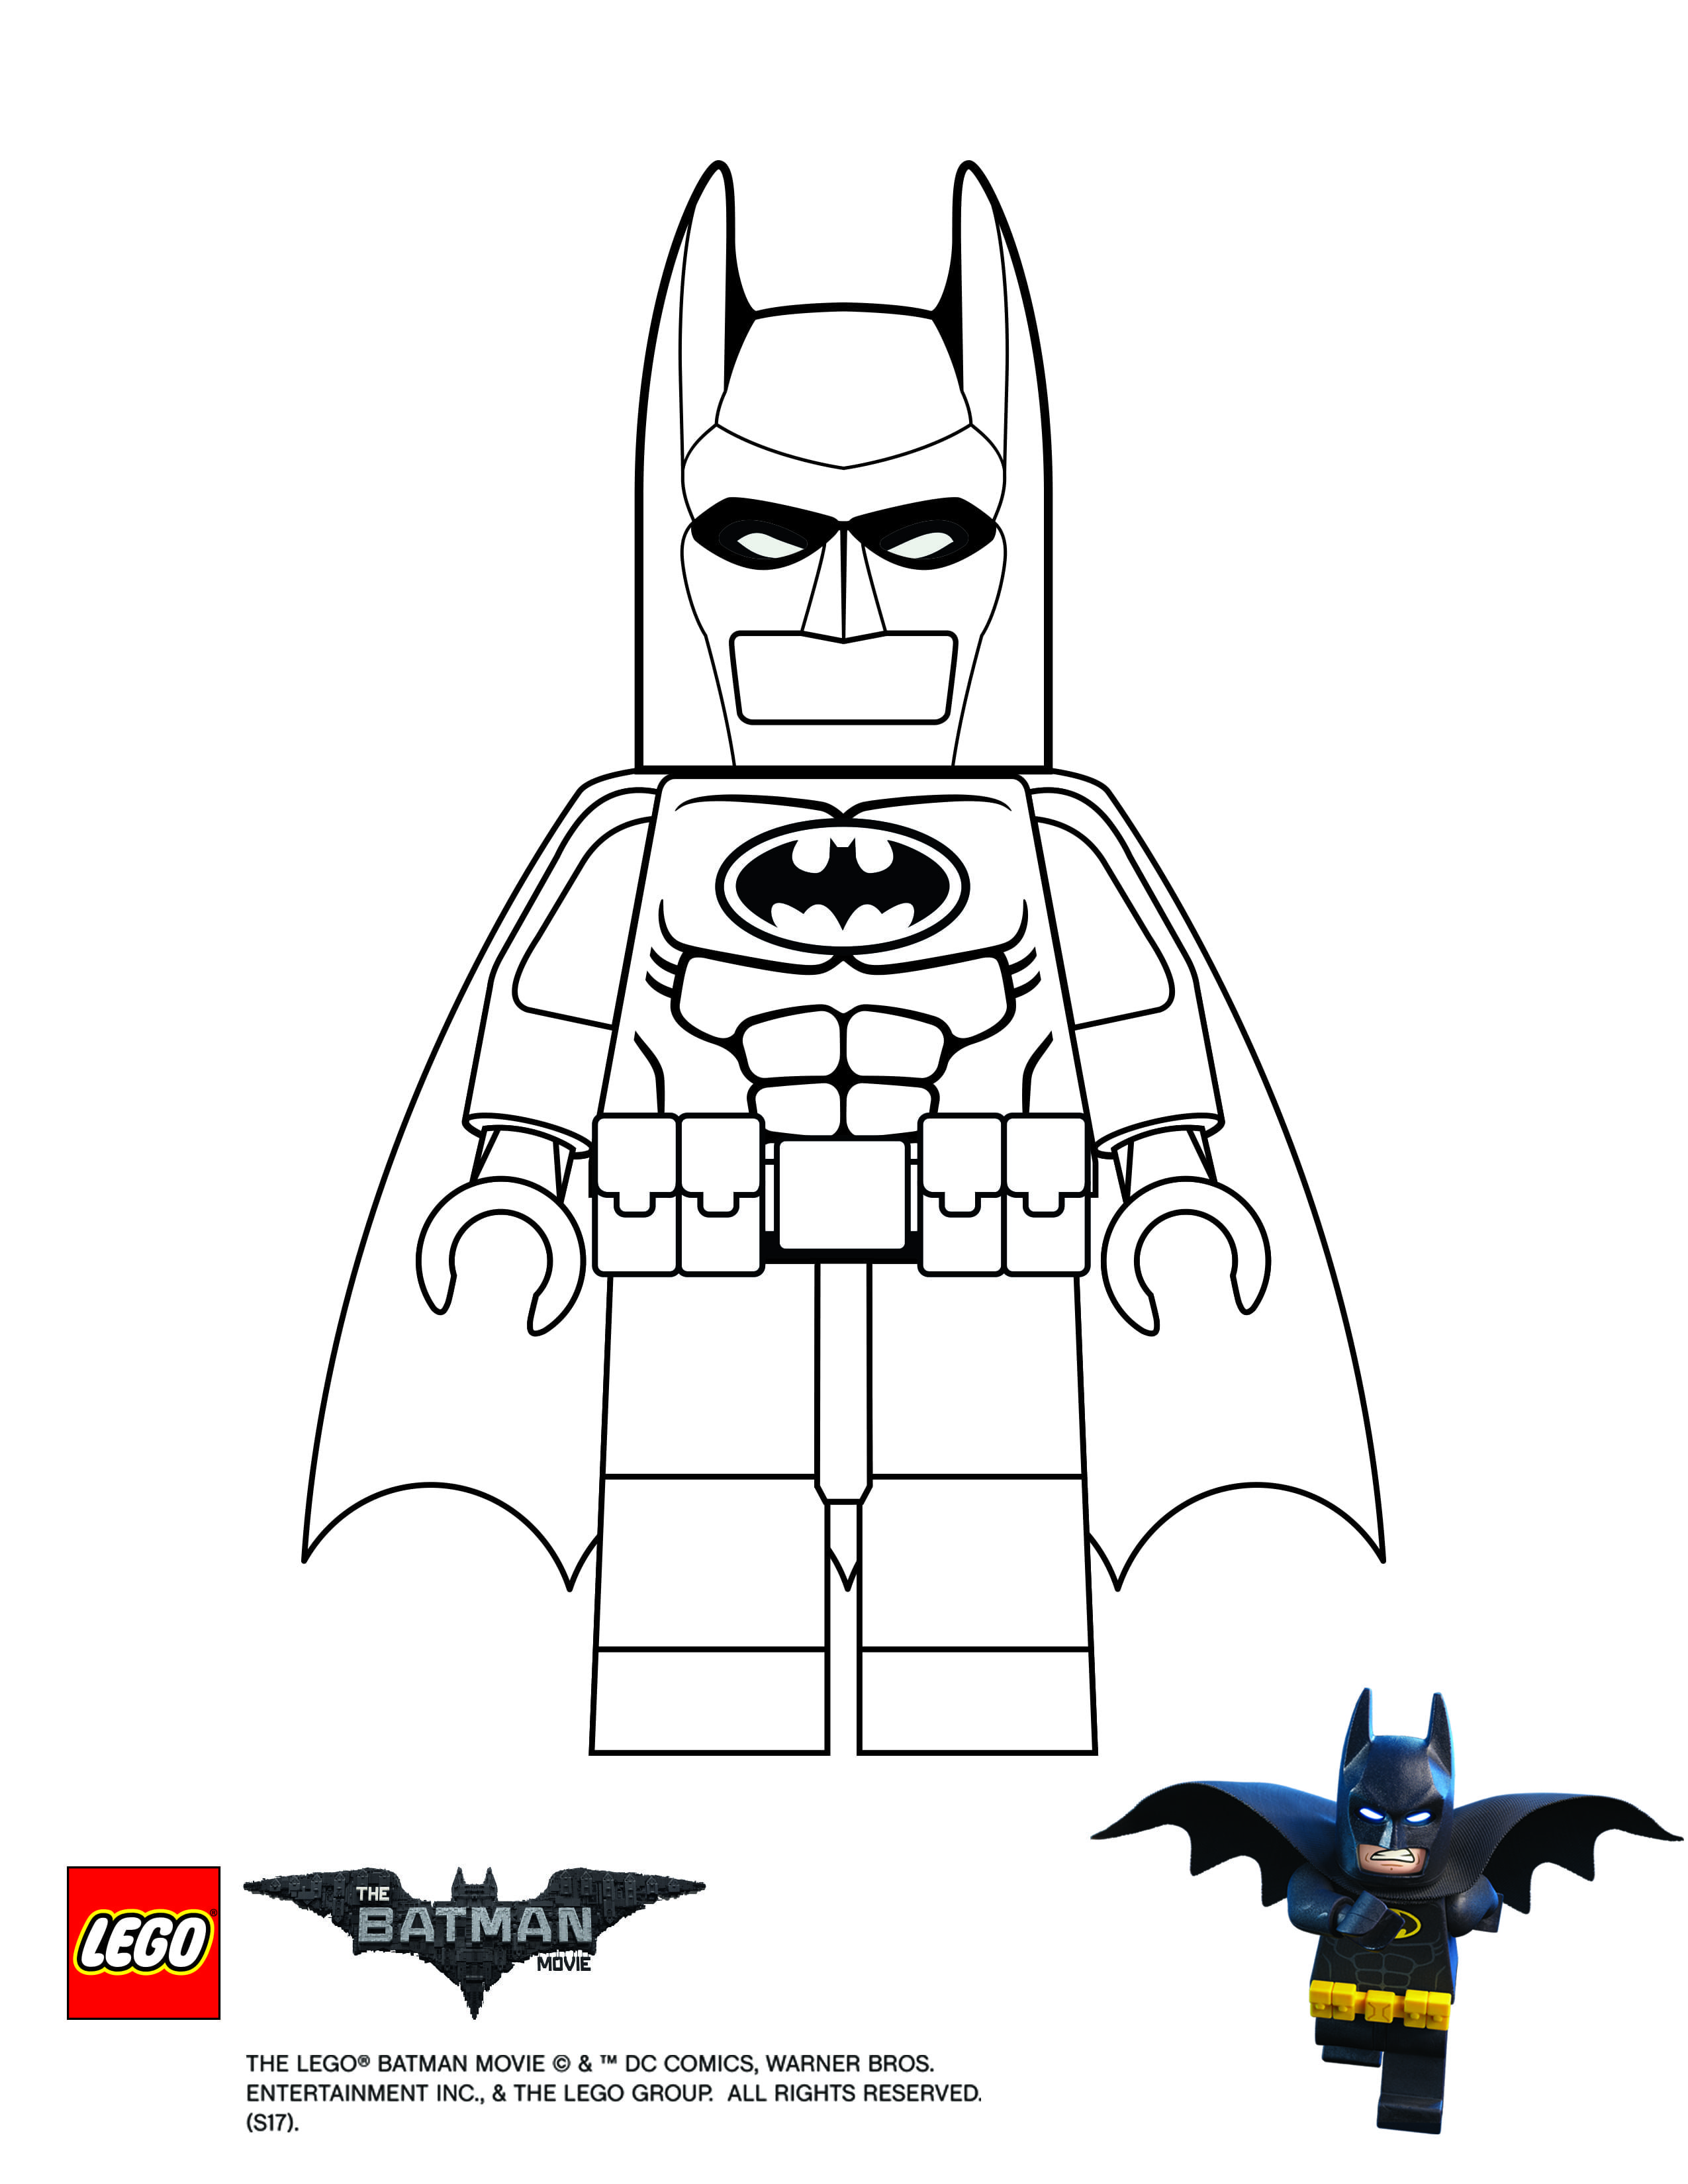 Lego Batman movie Batman coloring page Legos Pinterest